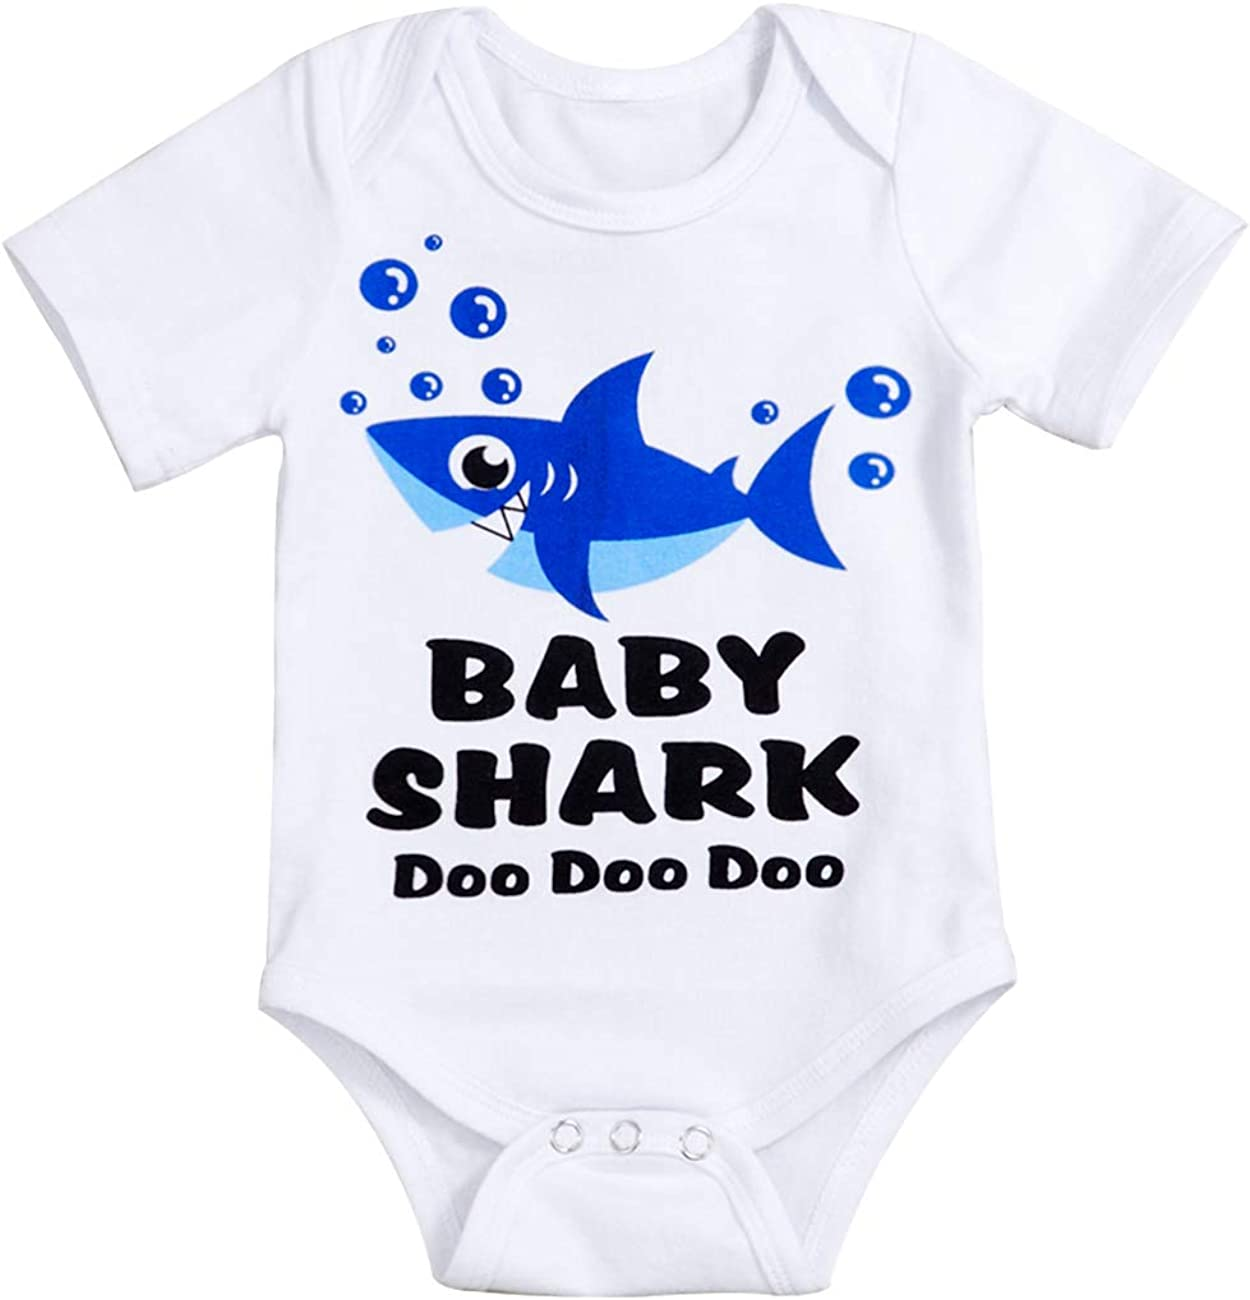 Newborn Baby Girls Boys Clothes Little Shark Print Short Sleeve Onesie Bodysuit Romper Jumpsuit